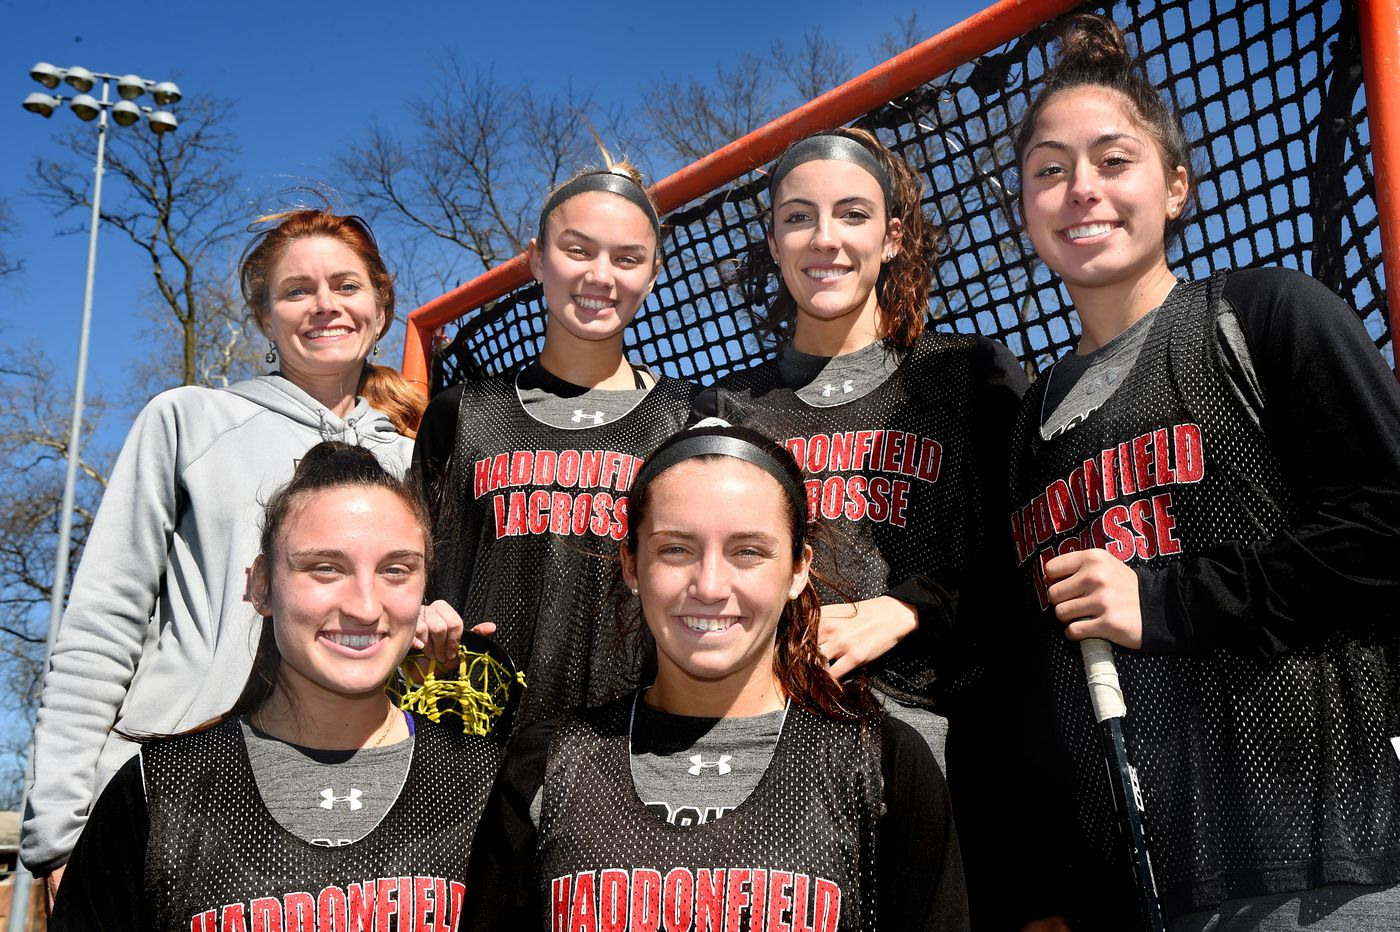 Haddonfield girls' lacrosse team, led by McKenzie Blake, is out for a second straight state championship